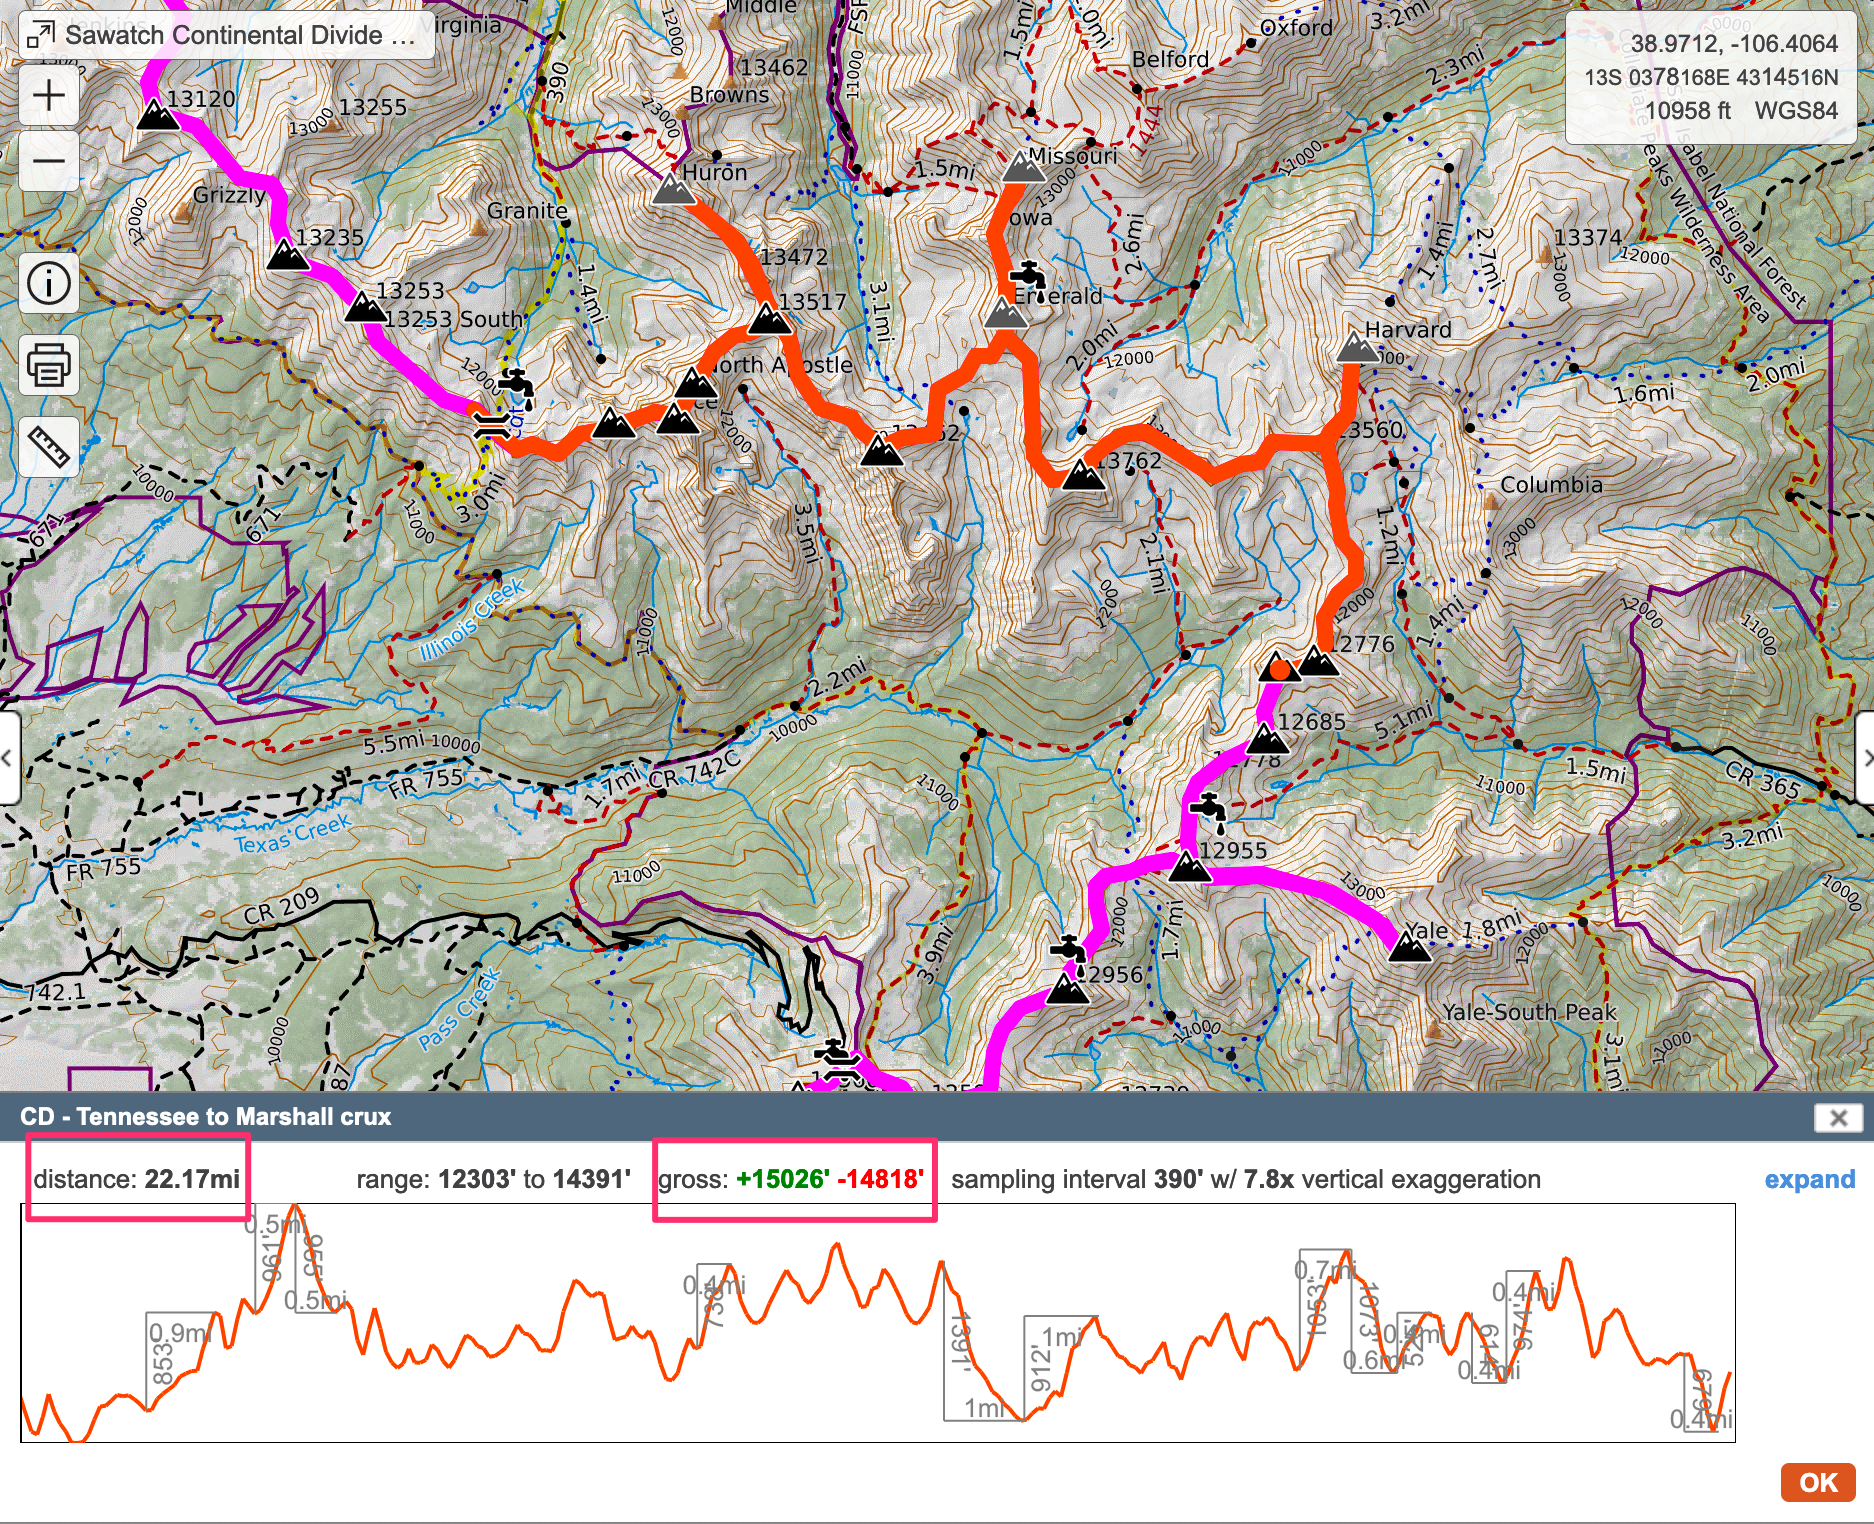 The Crux of the Sawatch Continental Divide ridge traverse (in red)